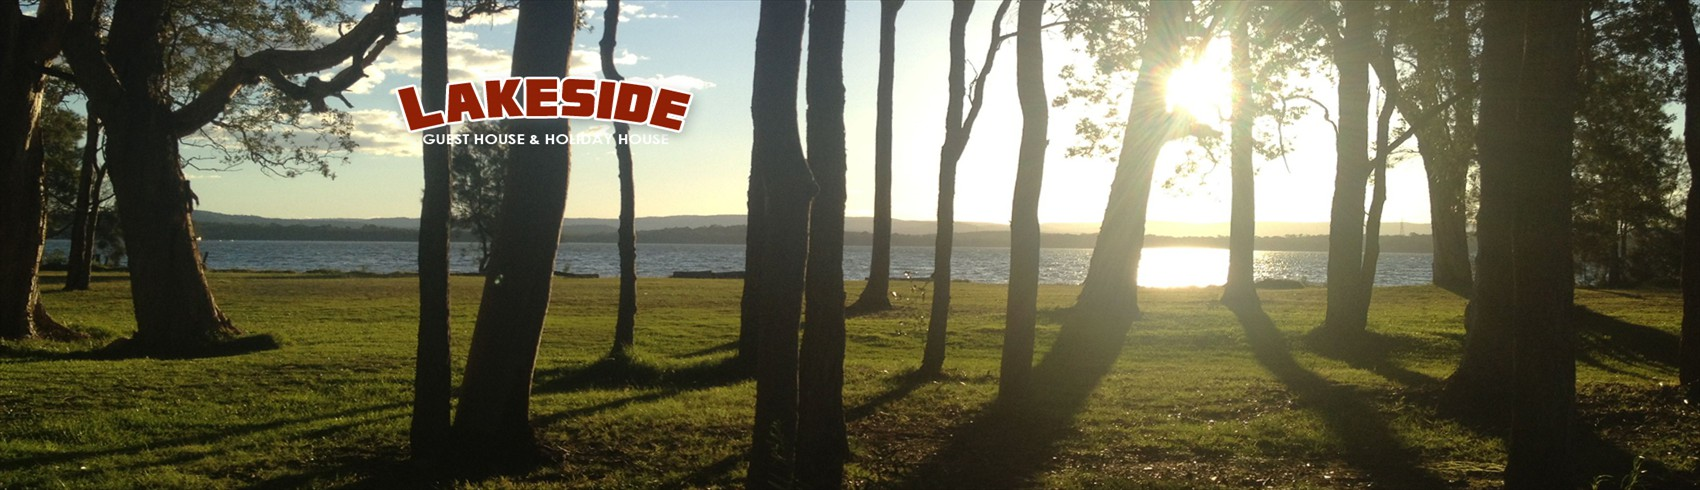 Relax and Unwind at The Lakeside Guesthouse & Holiday House - Lake Macquarie